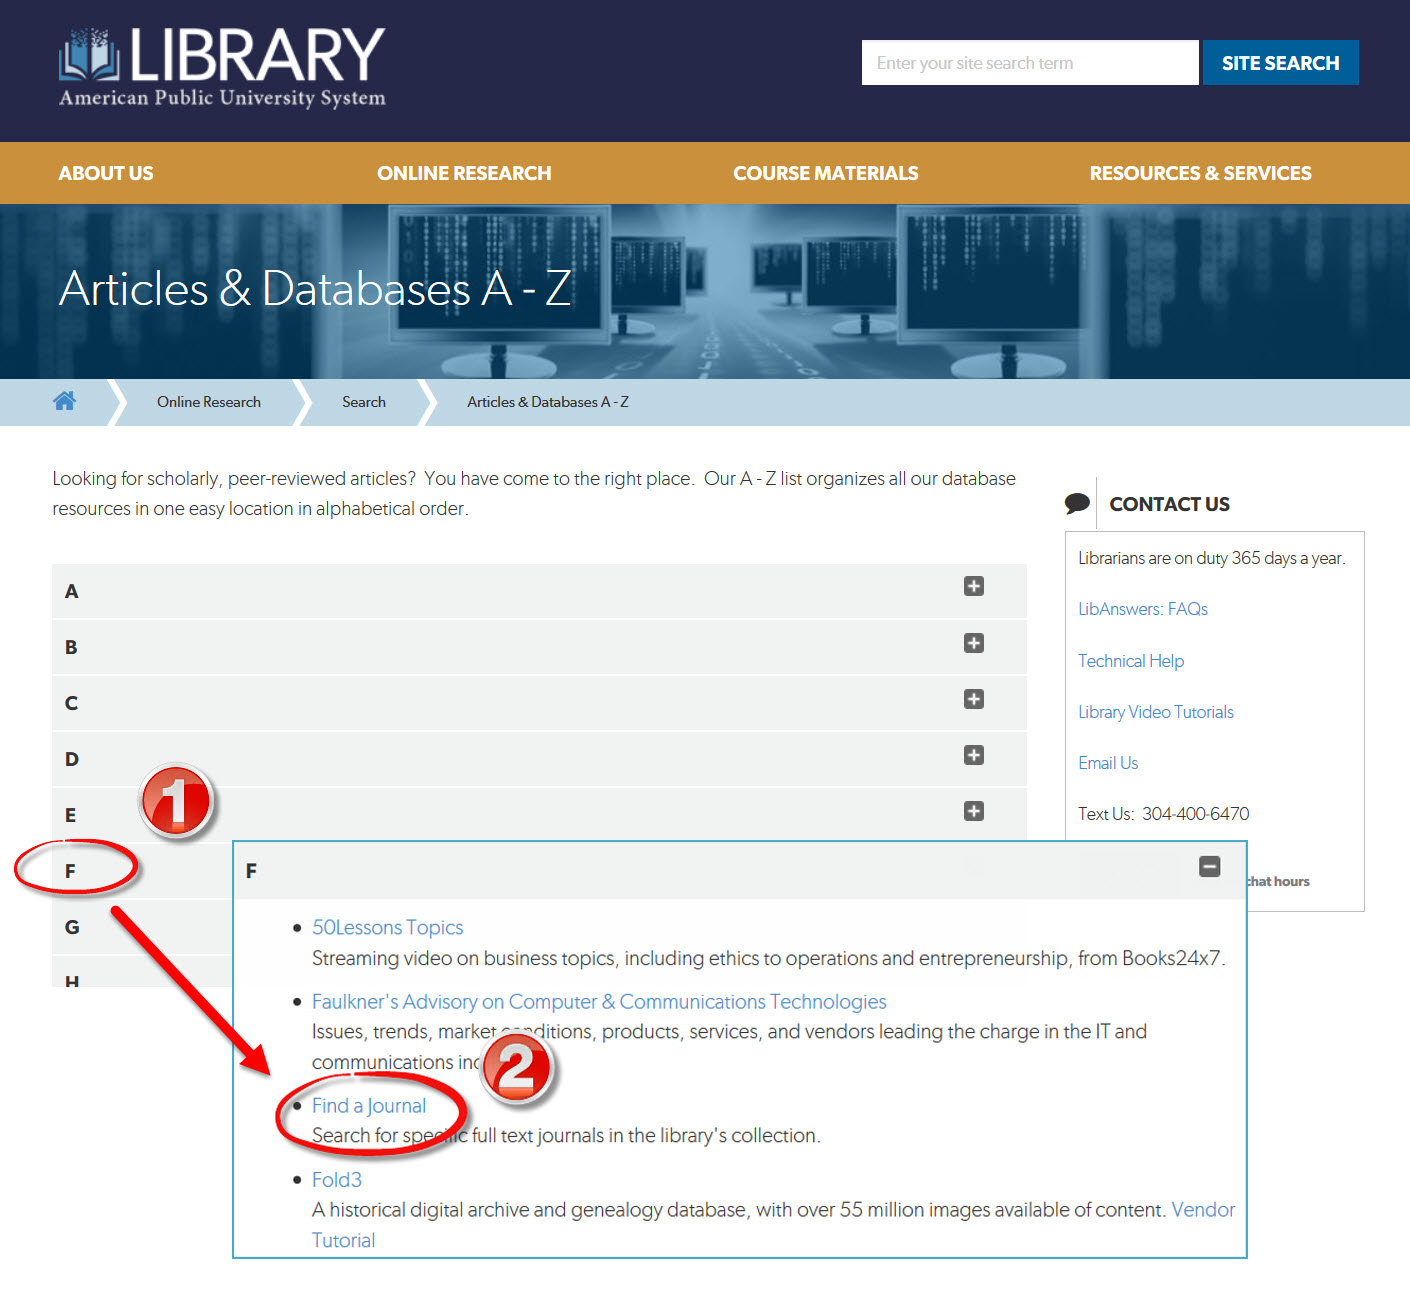 Find a Journal Link on Databases A-Z List